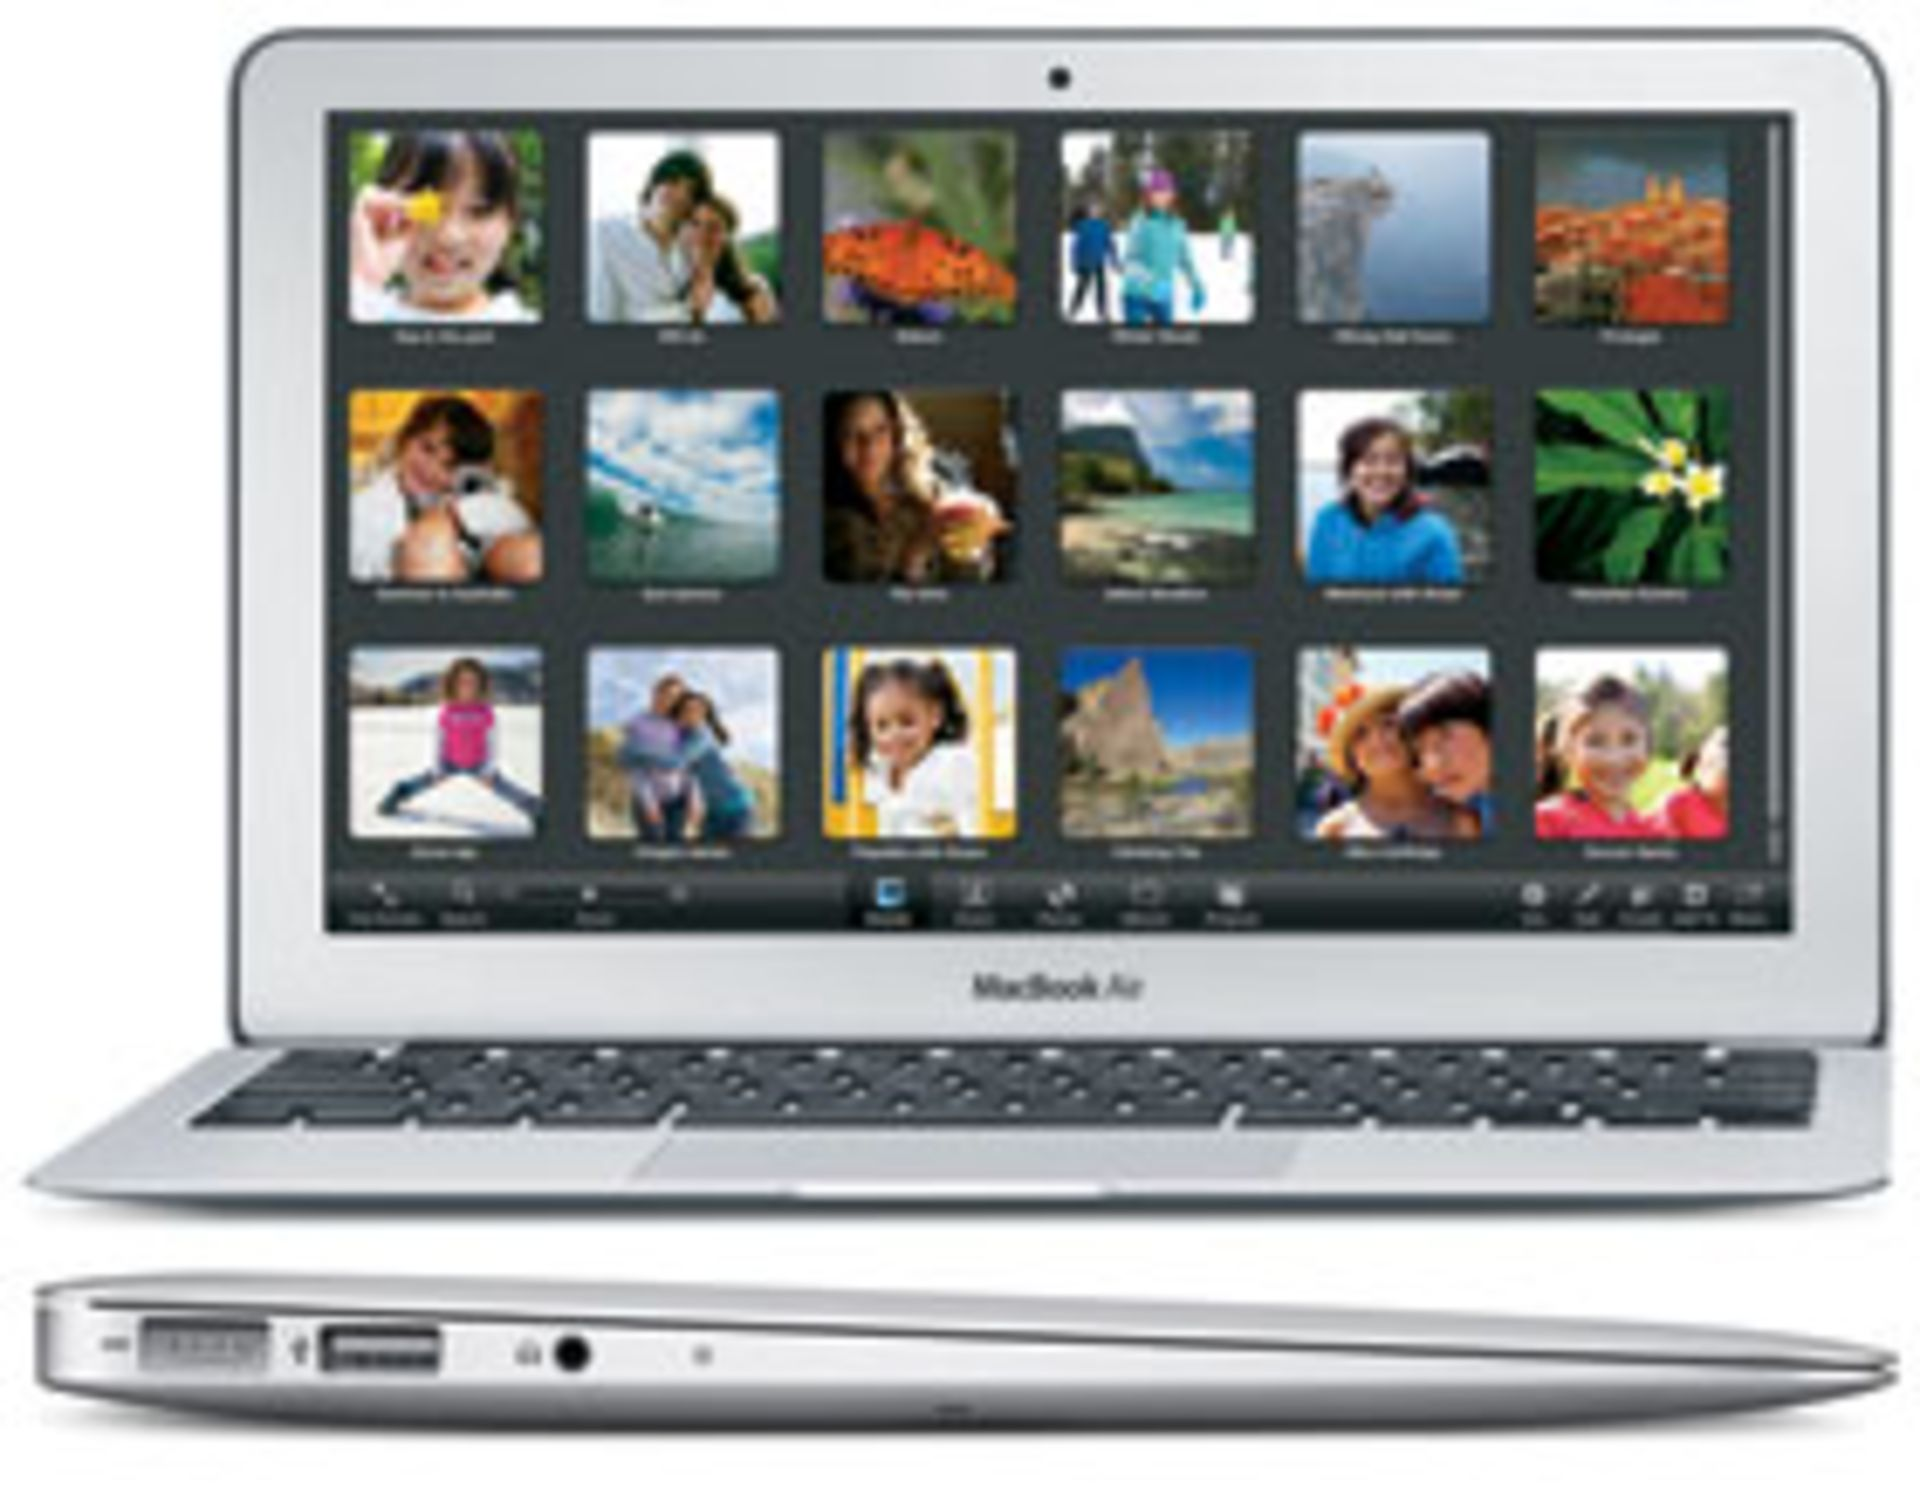 Lot 60040 - V Grade B Macbook Air 11.6 Inch Core 2 Duo - 64GB SSD - A1370 - Available Approx 7 Working Days